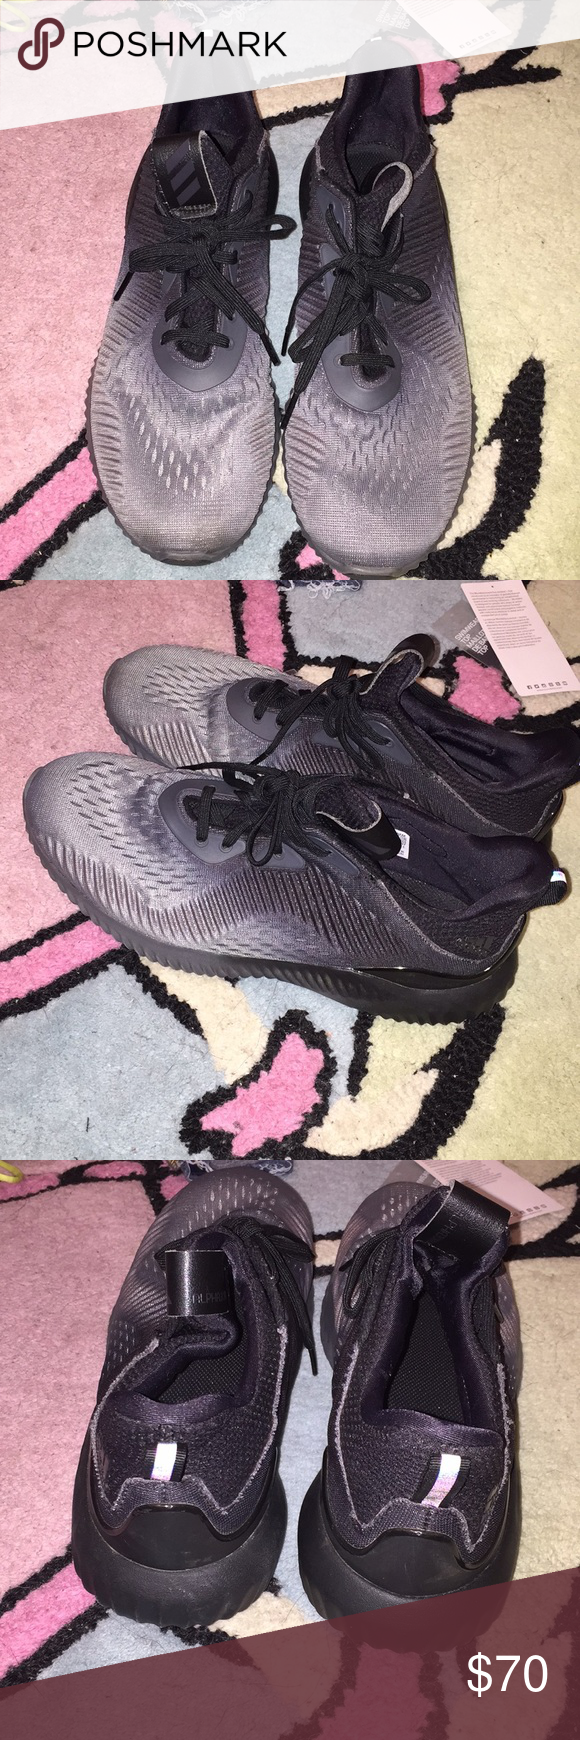 check out a3b8f e0313 Black and Grey Ombre Adidas Alpha Bounces These alpha bounces are so comfy!  (PRICE